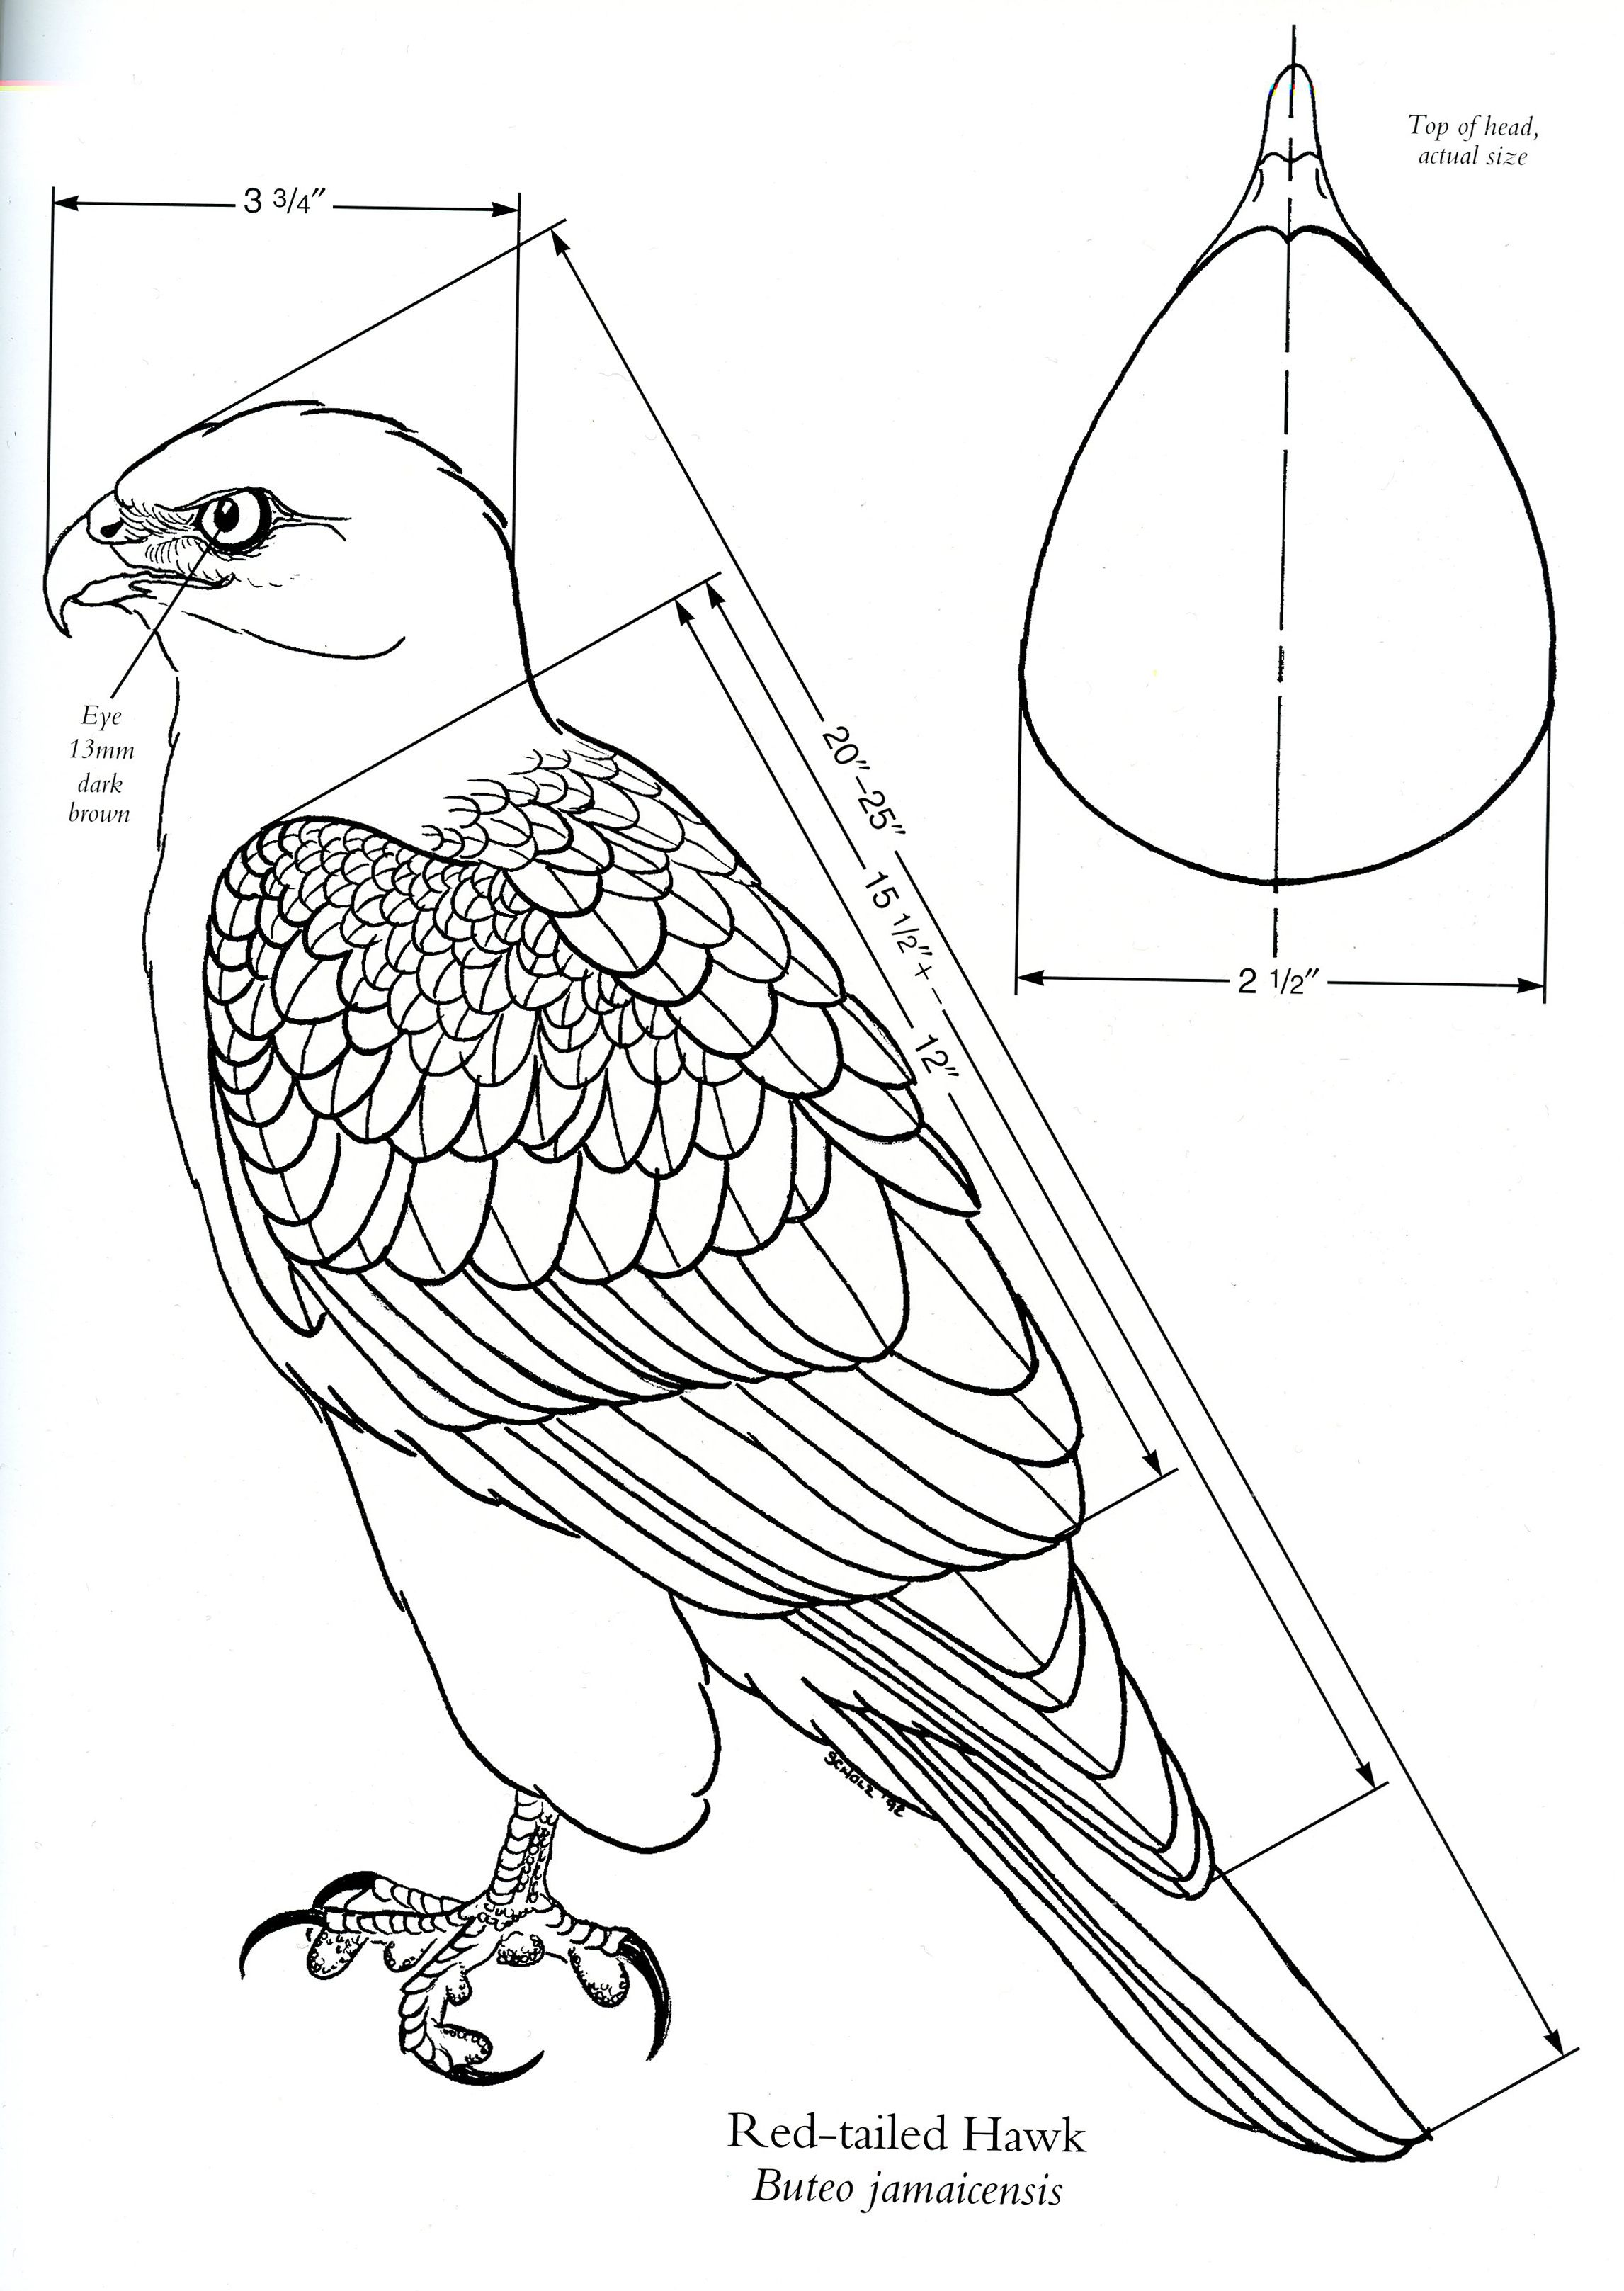 Of Birds Prey Wing Diagram Wiring Diagrams Nonisolated 12v Dc Power Supply Circuit Composed Ucc3889 A Red Tailed Hawk Source By Floyd Scholz Rh Pinterest Com